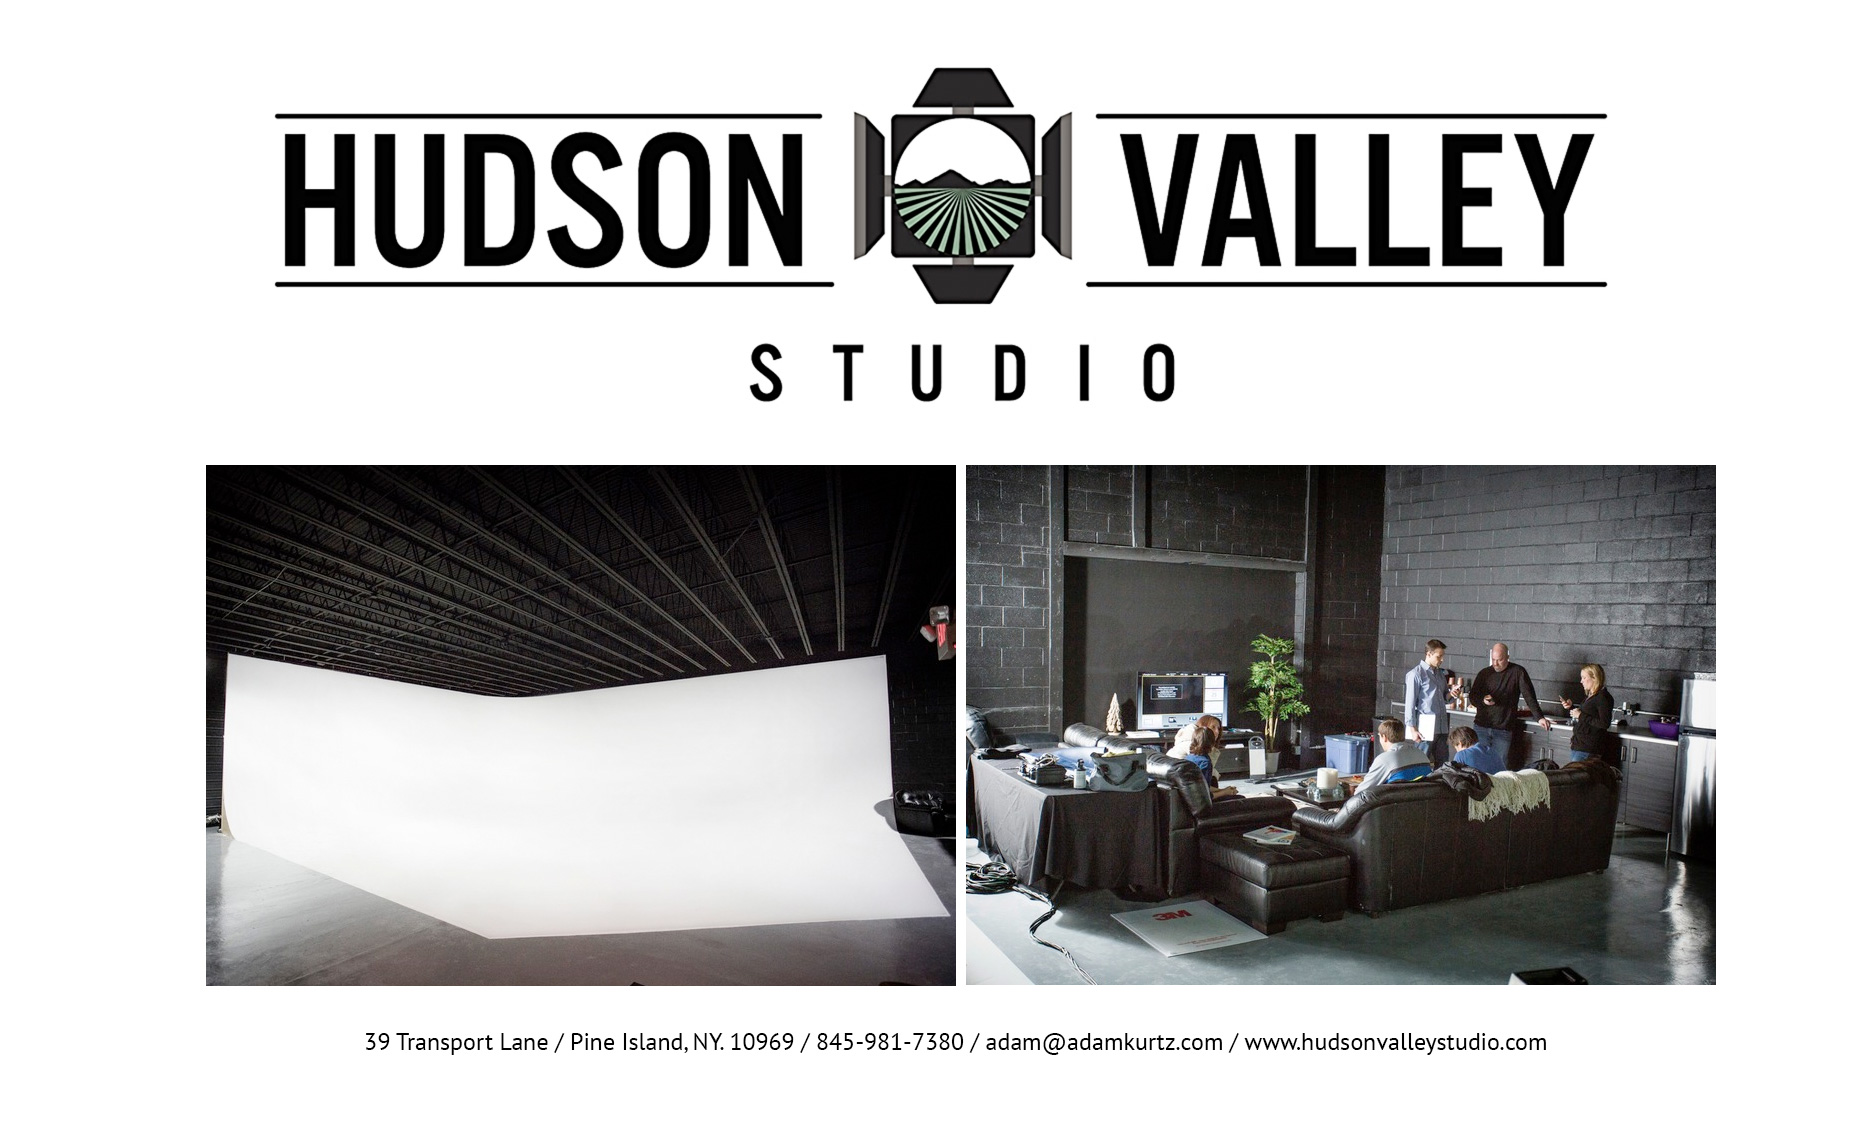 HusonValleyStudio